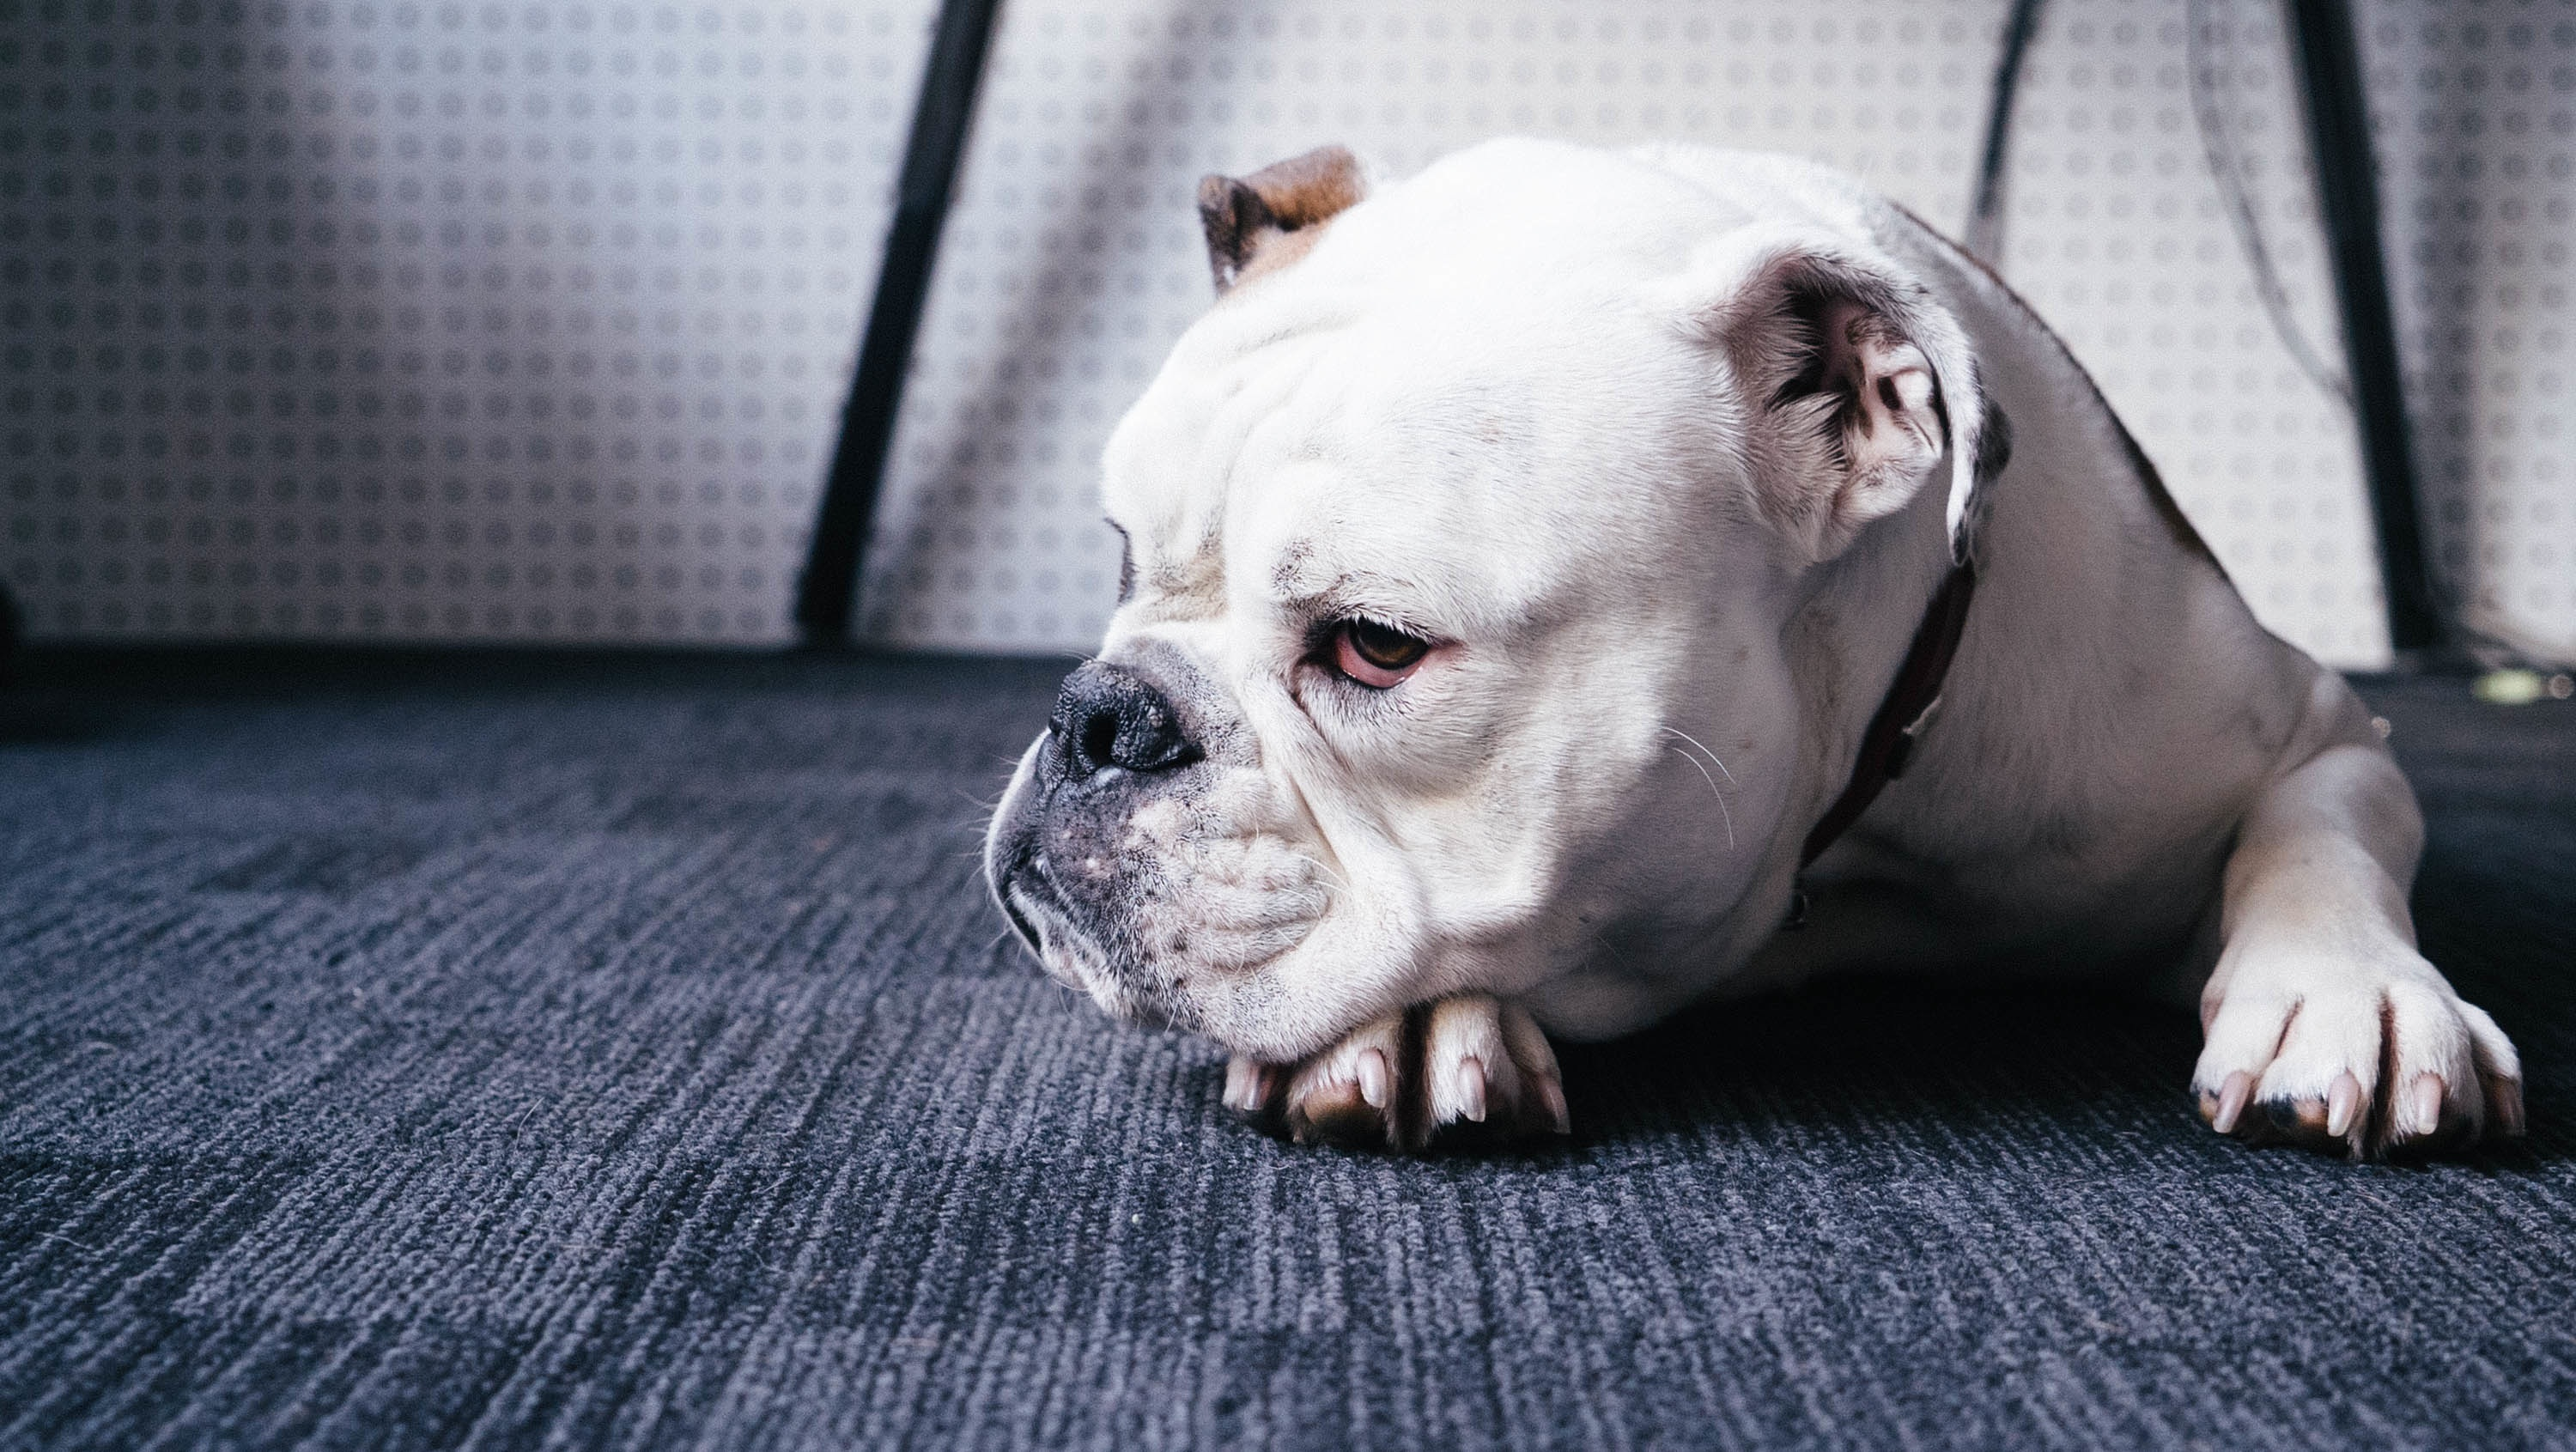 100311 download wallpaper Animals, Bulldog, Dog, Muzzle, To Lie Down, Lie screensavers and pictures for free